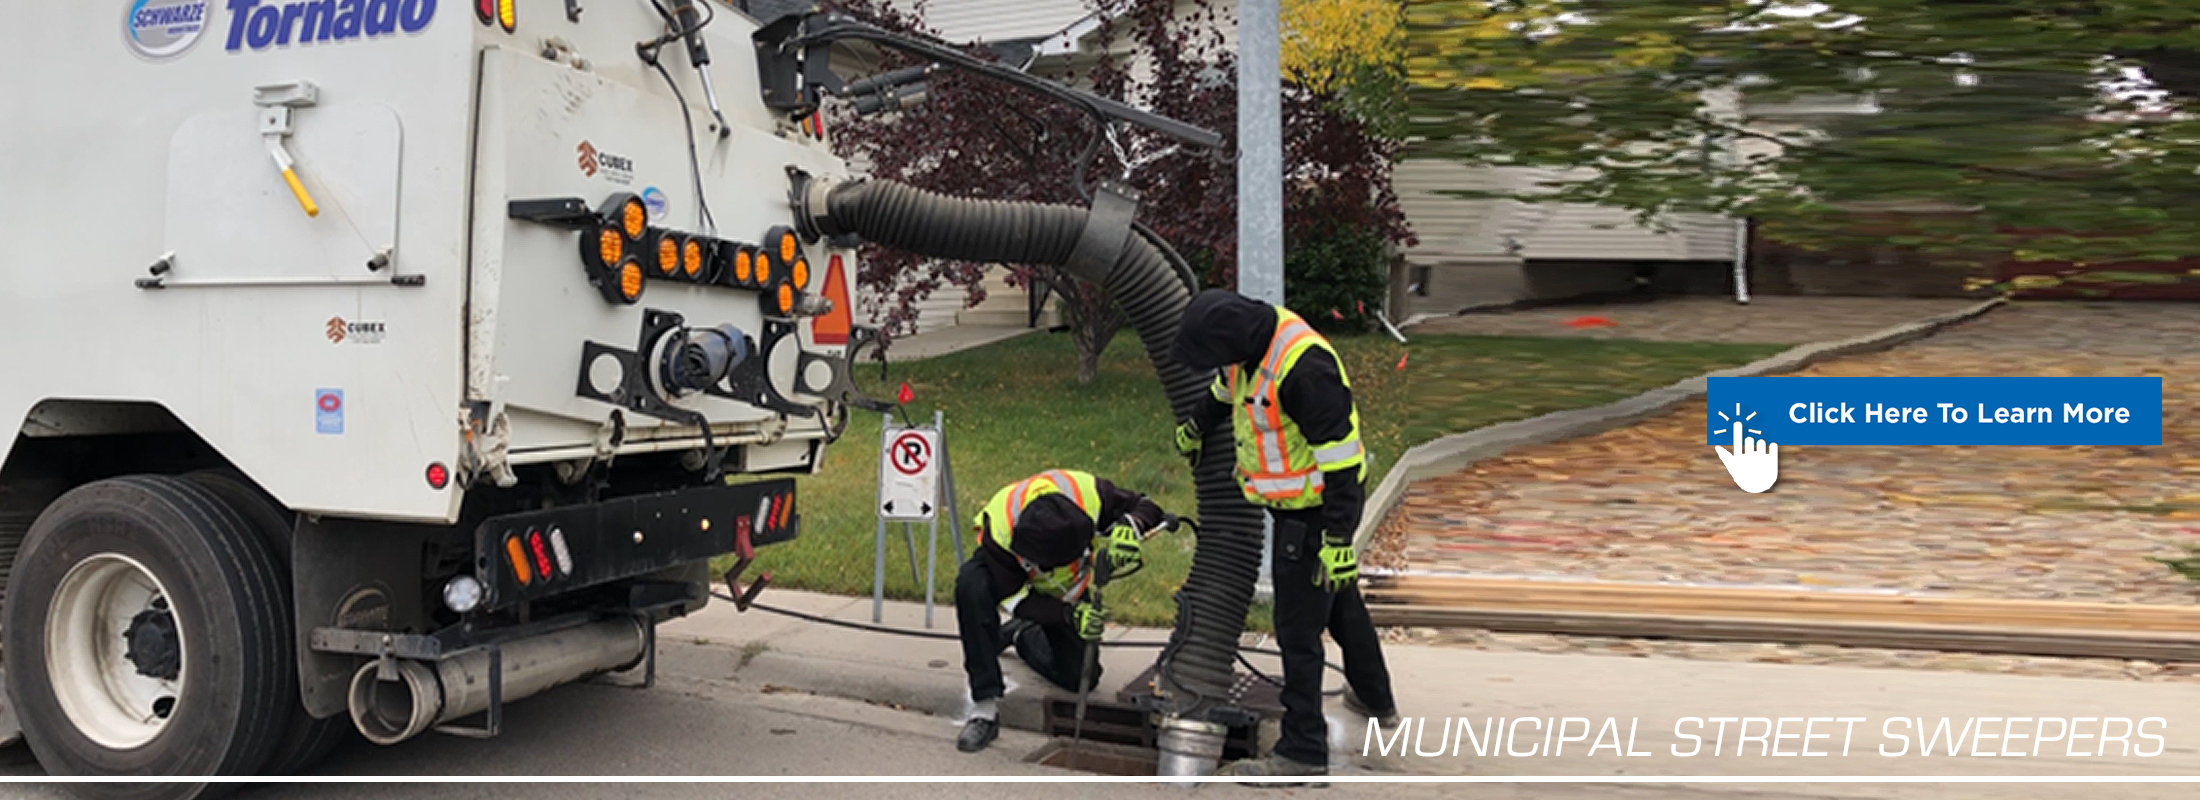 Municipal Street Sweepers Banner Graphic